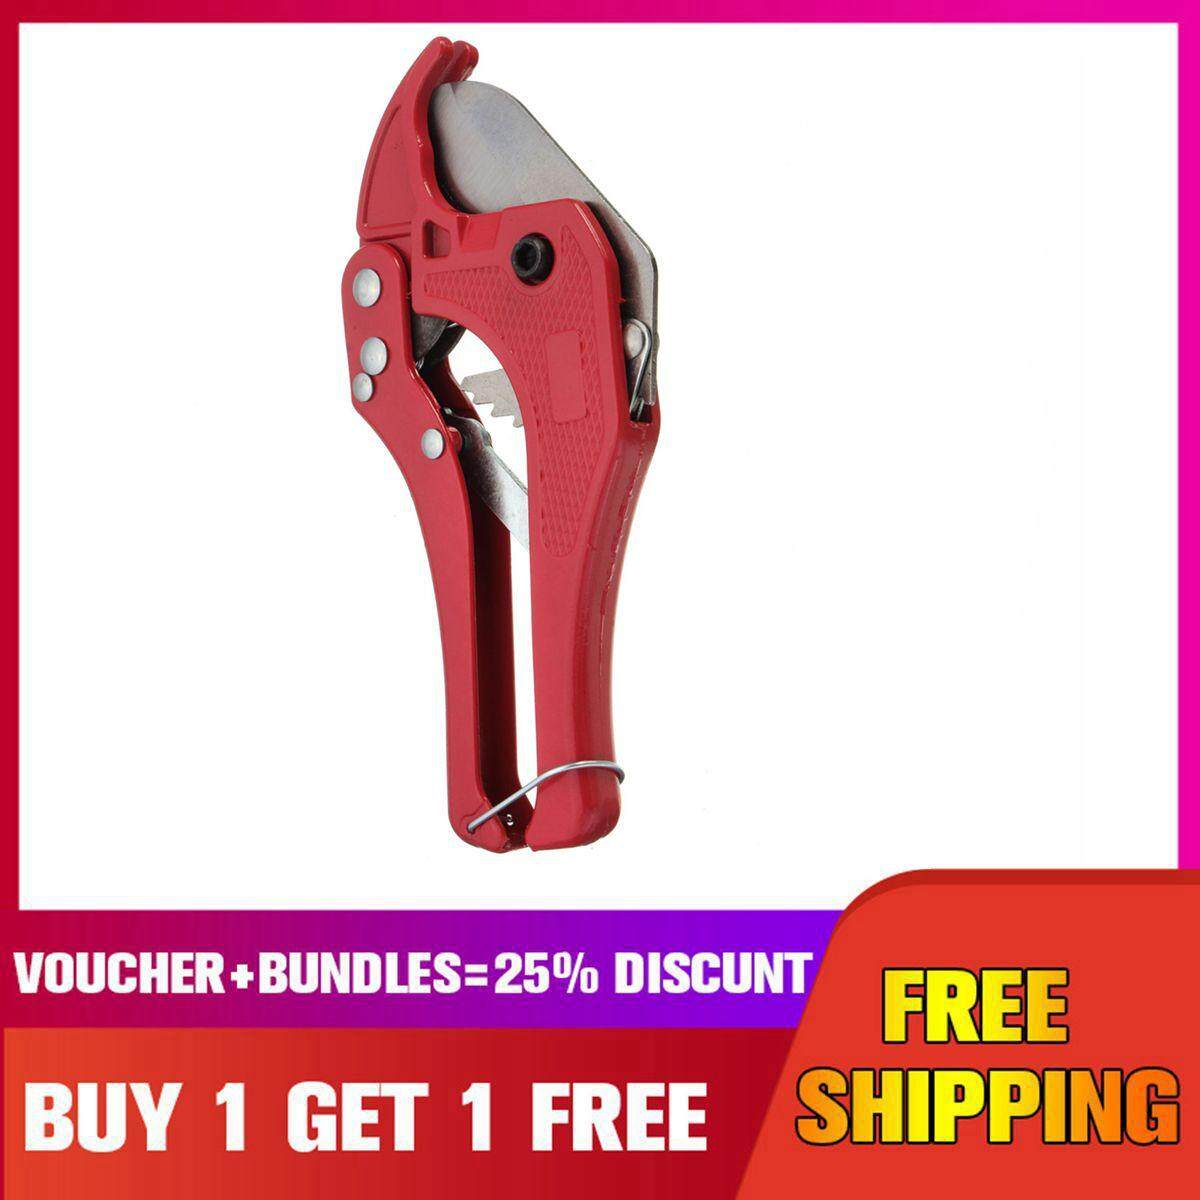 【BUY 1 GET 1 FREE】42mm PVC Pipe Plumbing Tube Plastic Hose PPR Cutter Pliers Tool Ratcheting Type